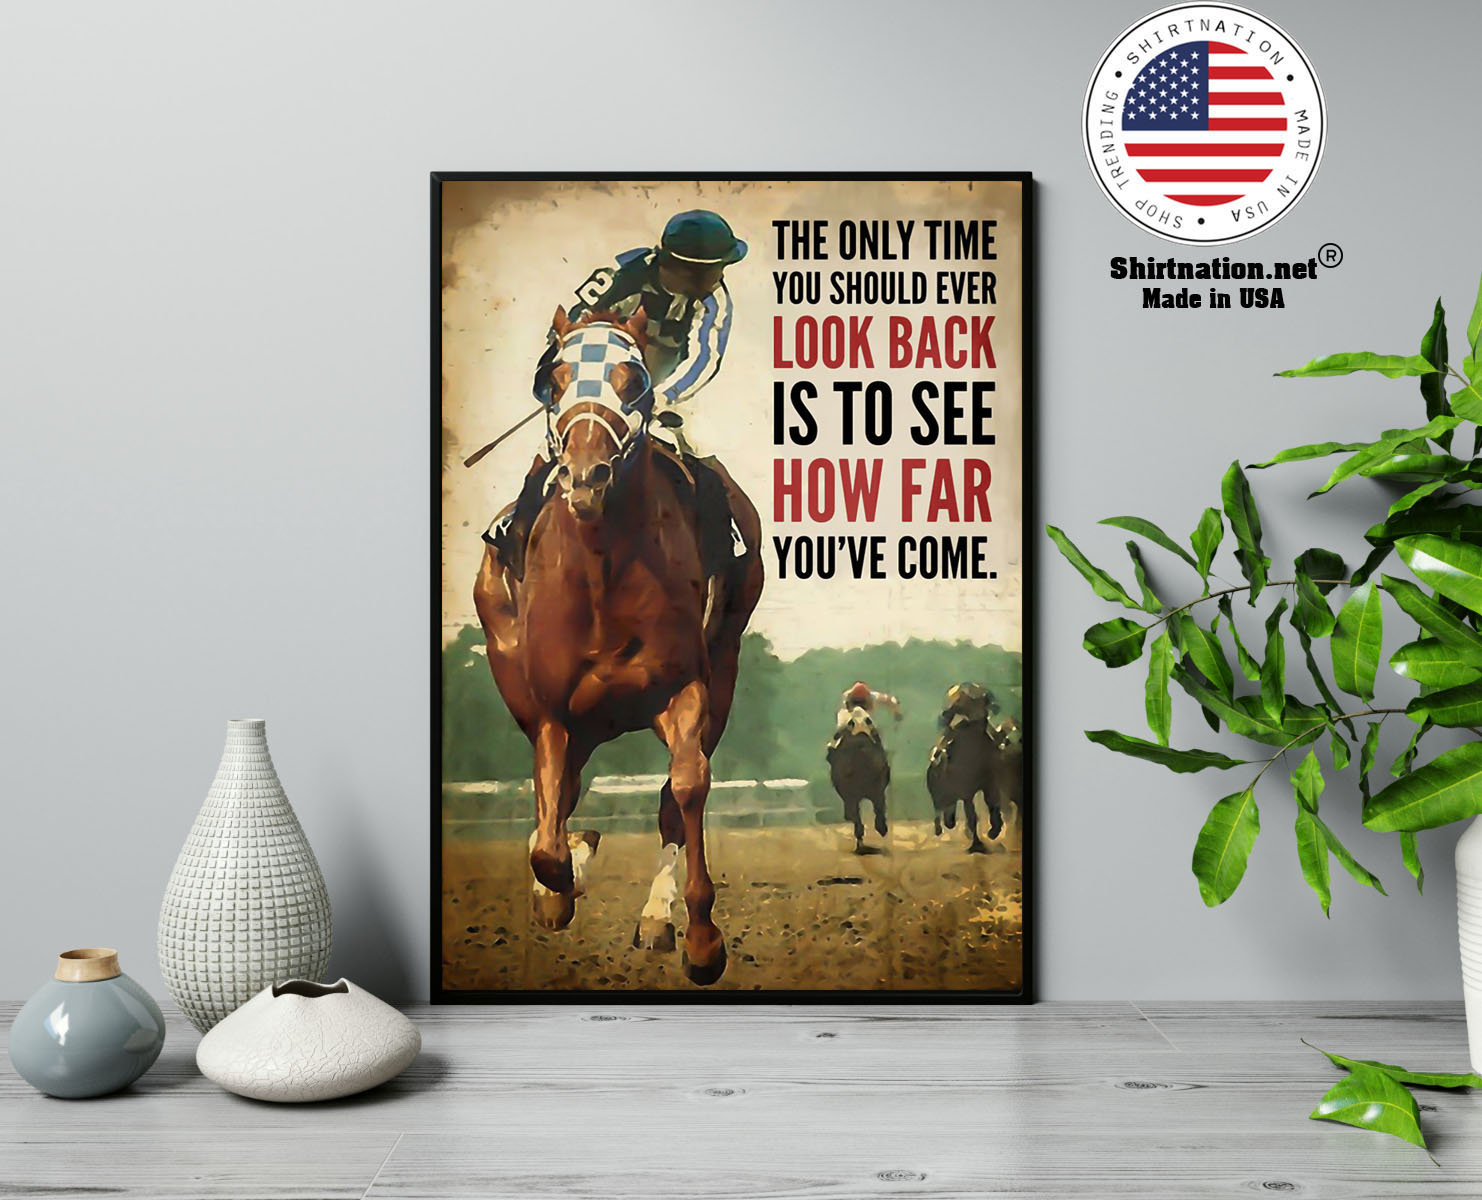 The only time you should ever look back is see how far youve come poster 13 1